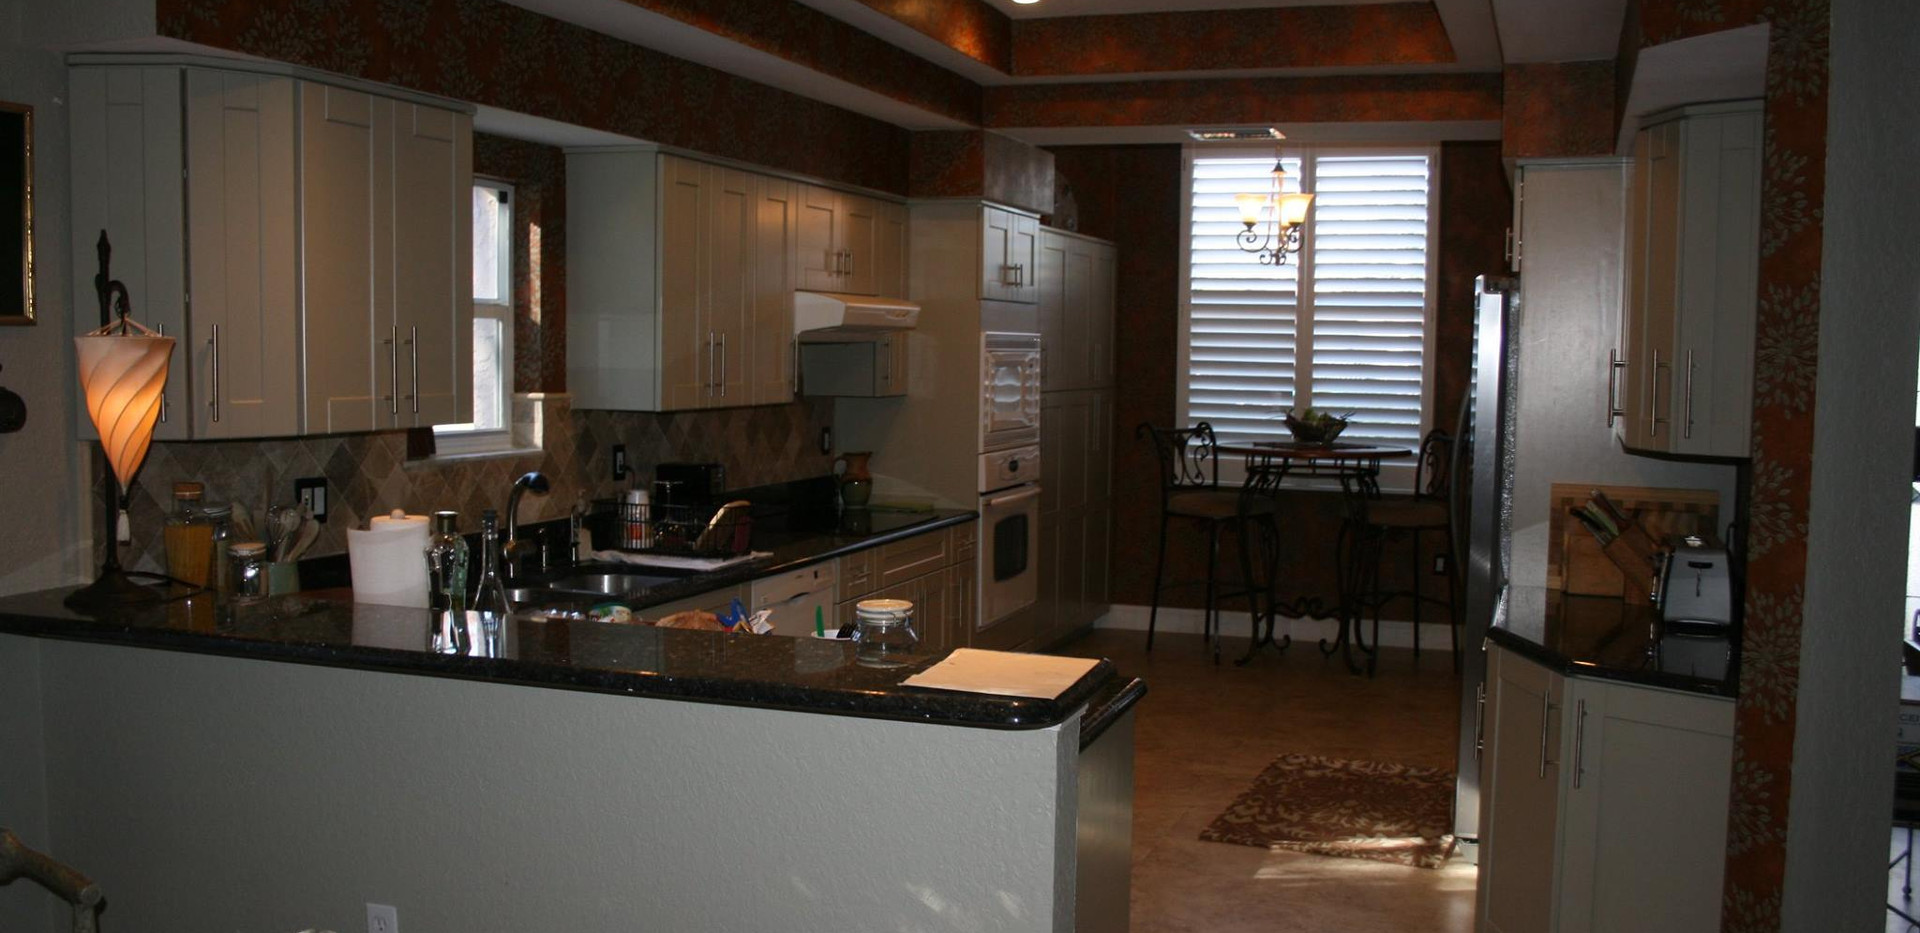 Cabinets Refacing PRJ 07